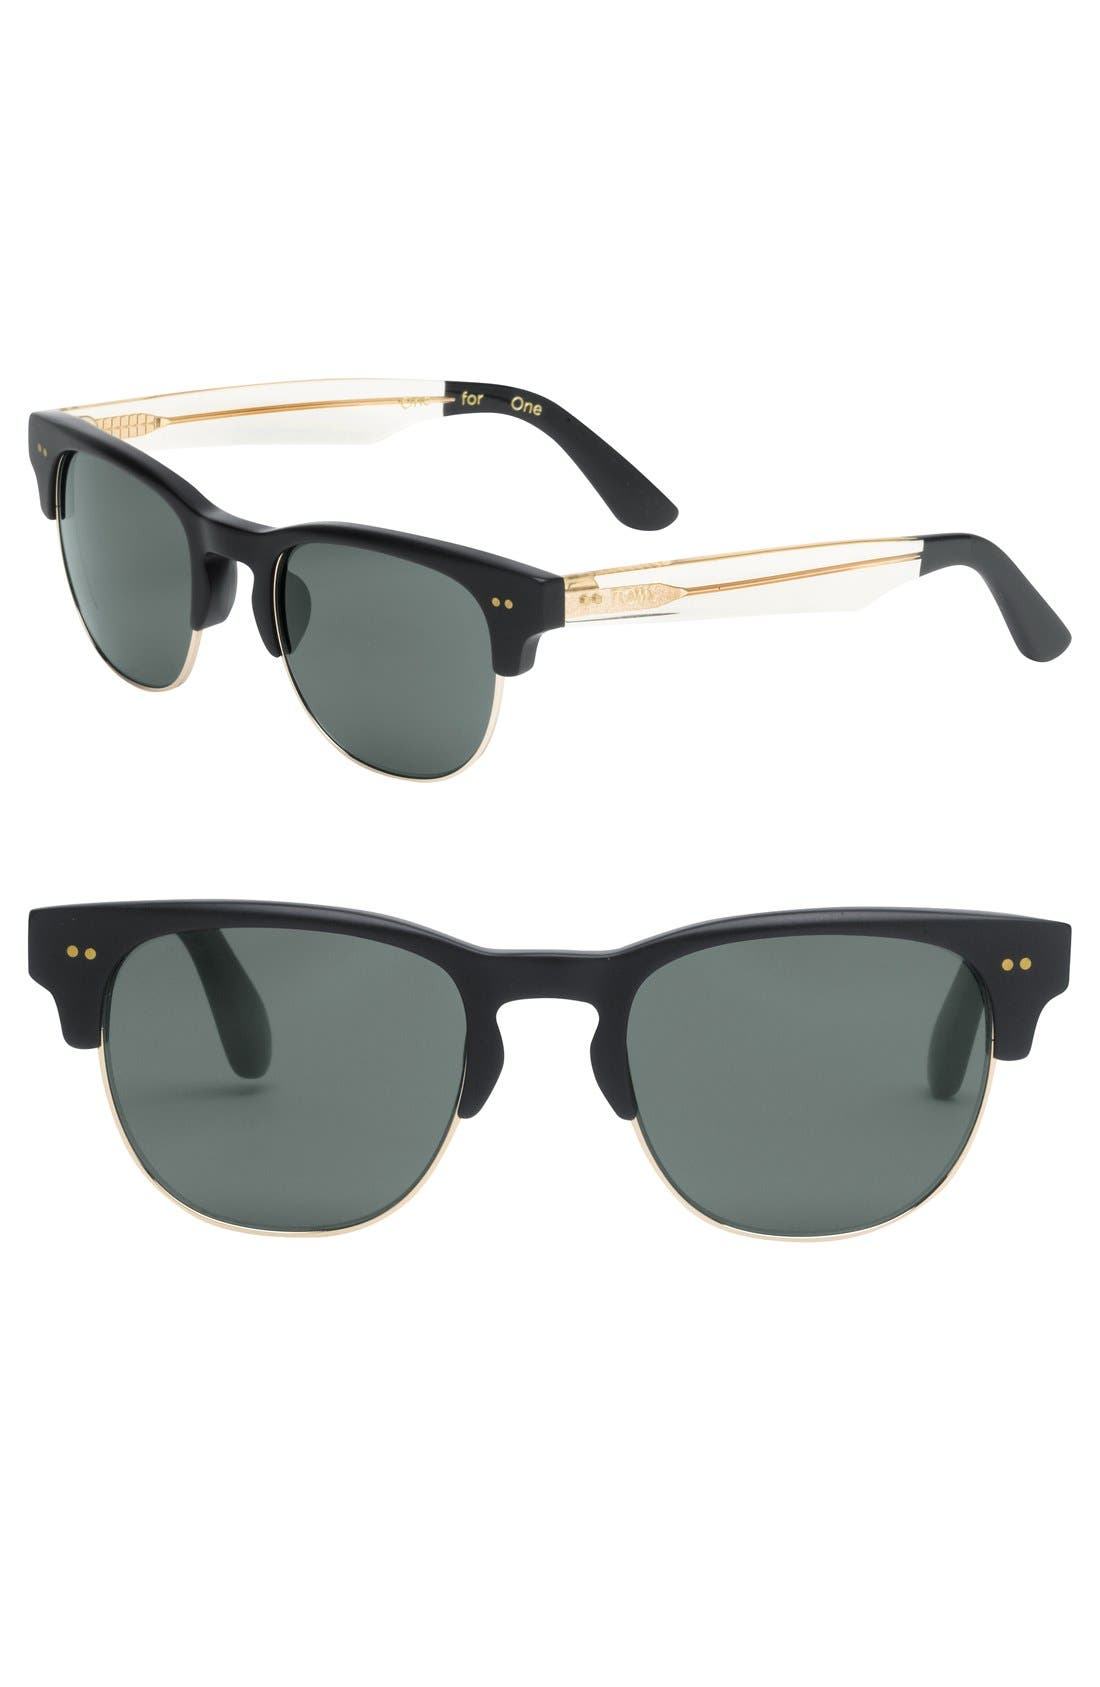 Main Image - TOMS 'Modern' Retro 50mm Sunglasses